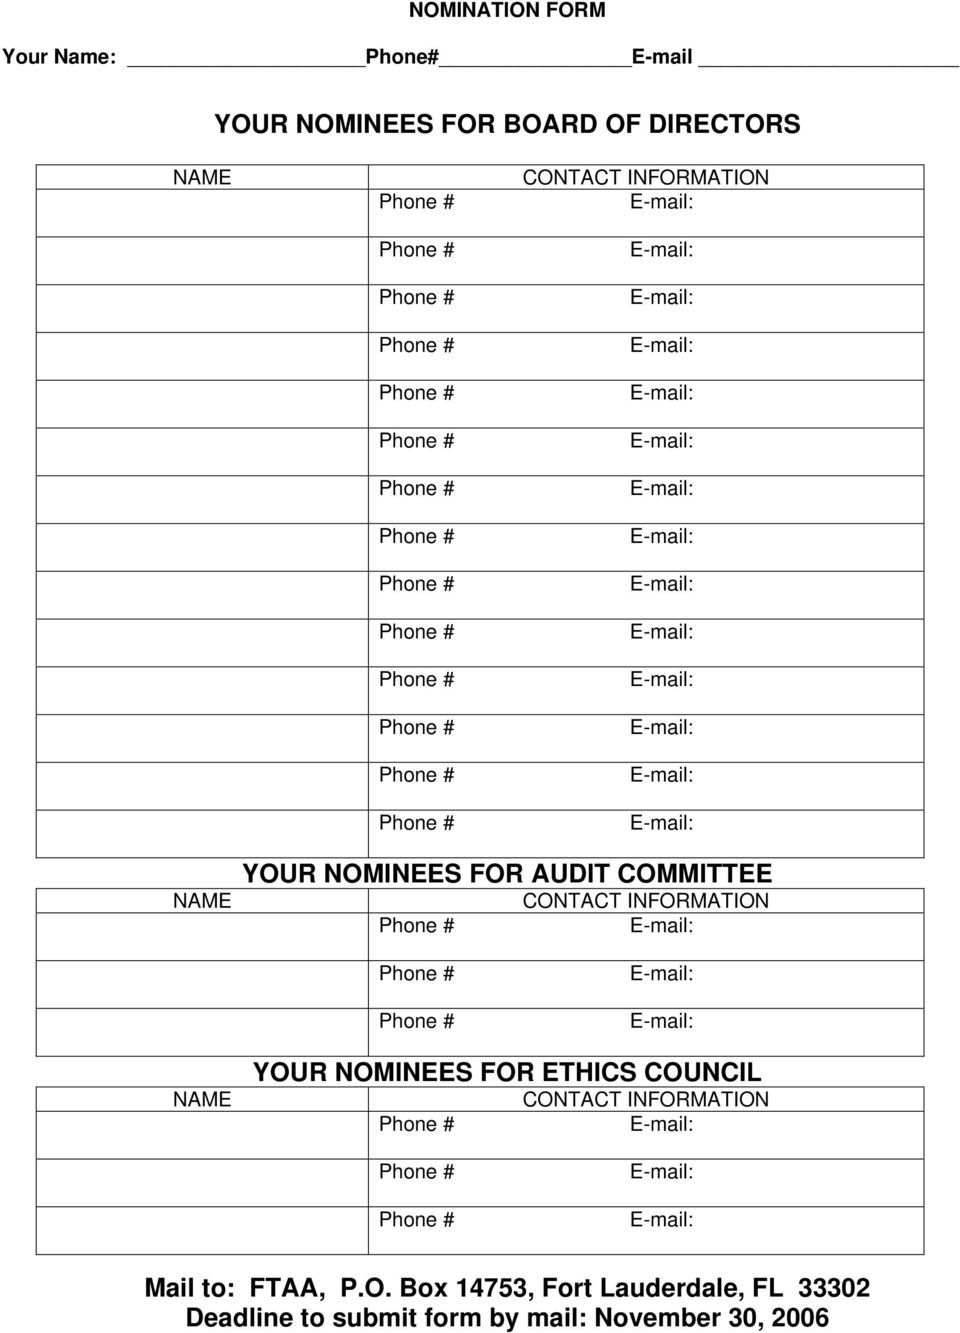 INFORMATION NAME YOUR NOMINEES FOR ETHICS COUNCIL CONTACT INFORMATION Mail to: